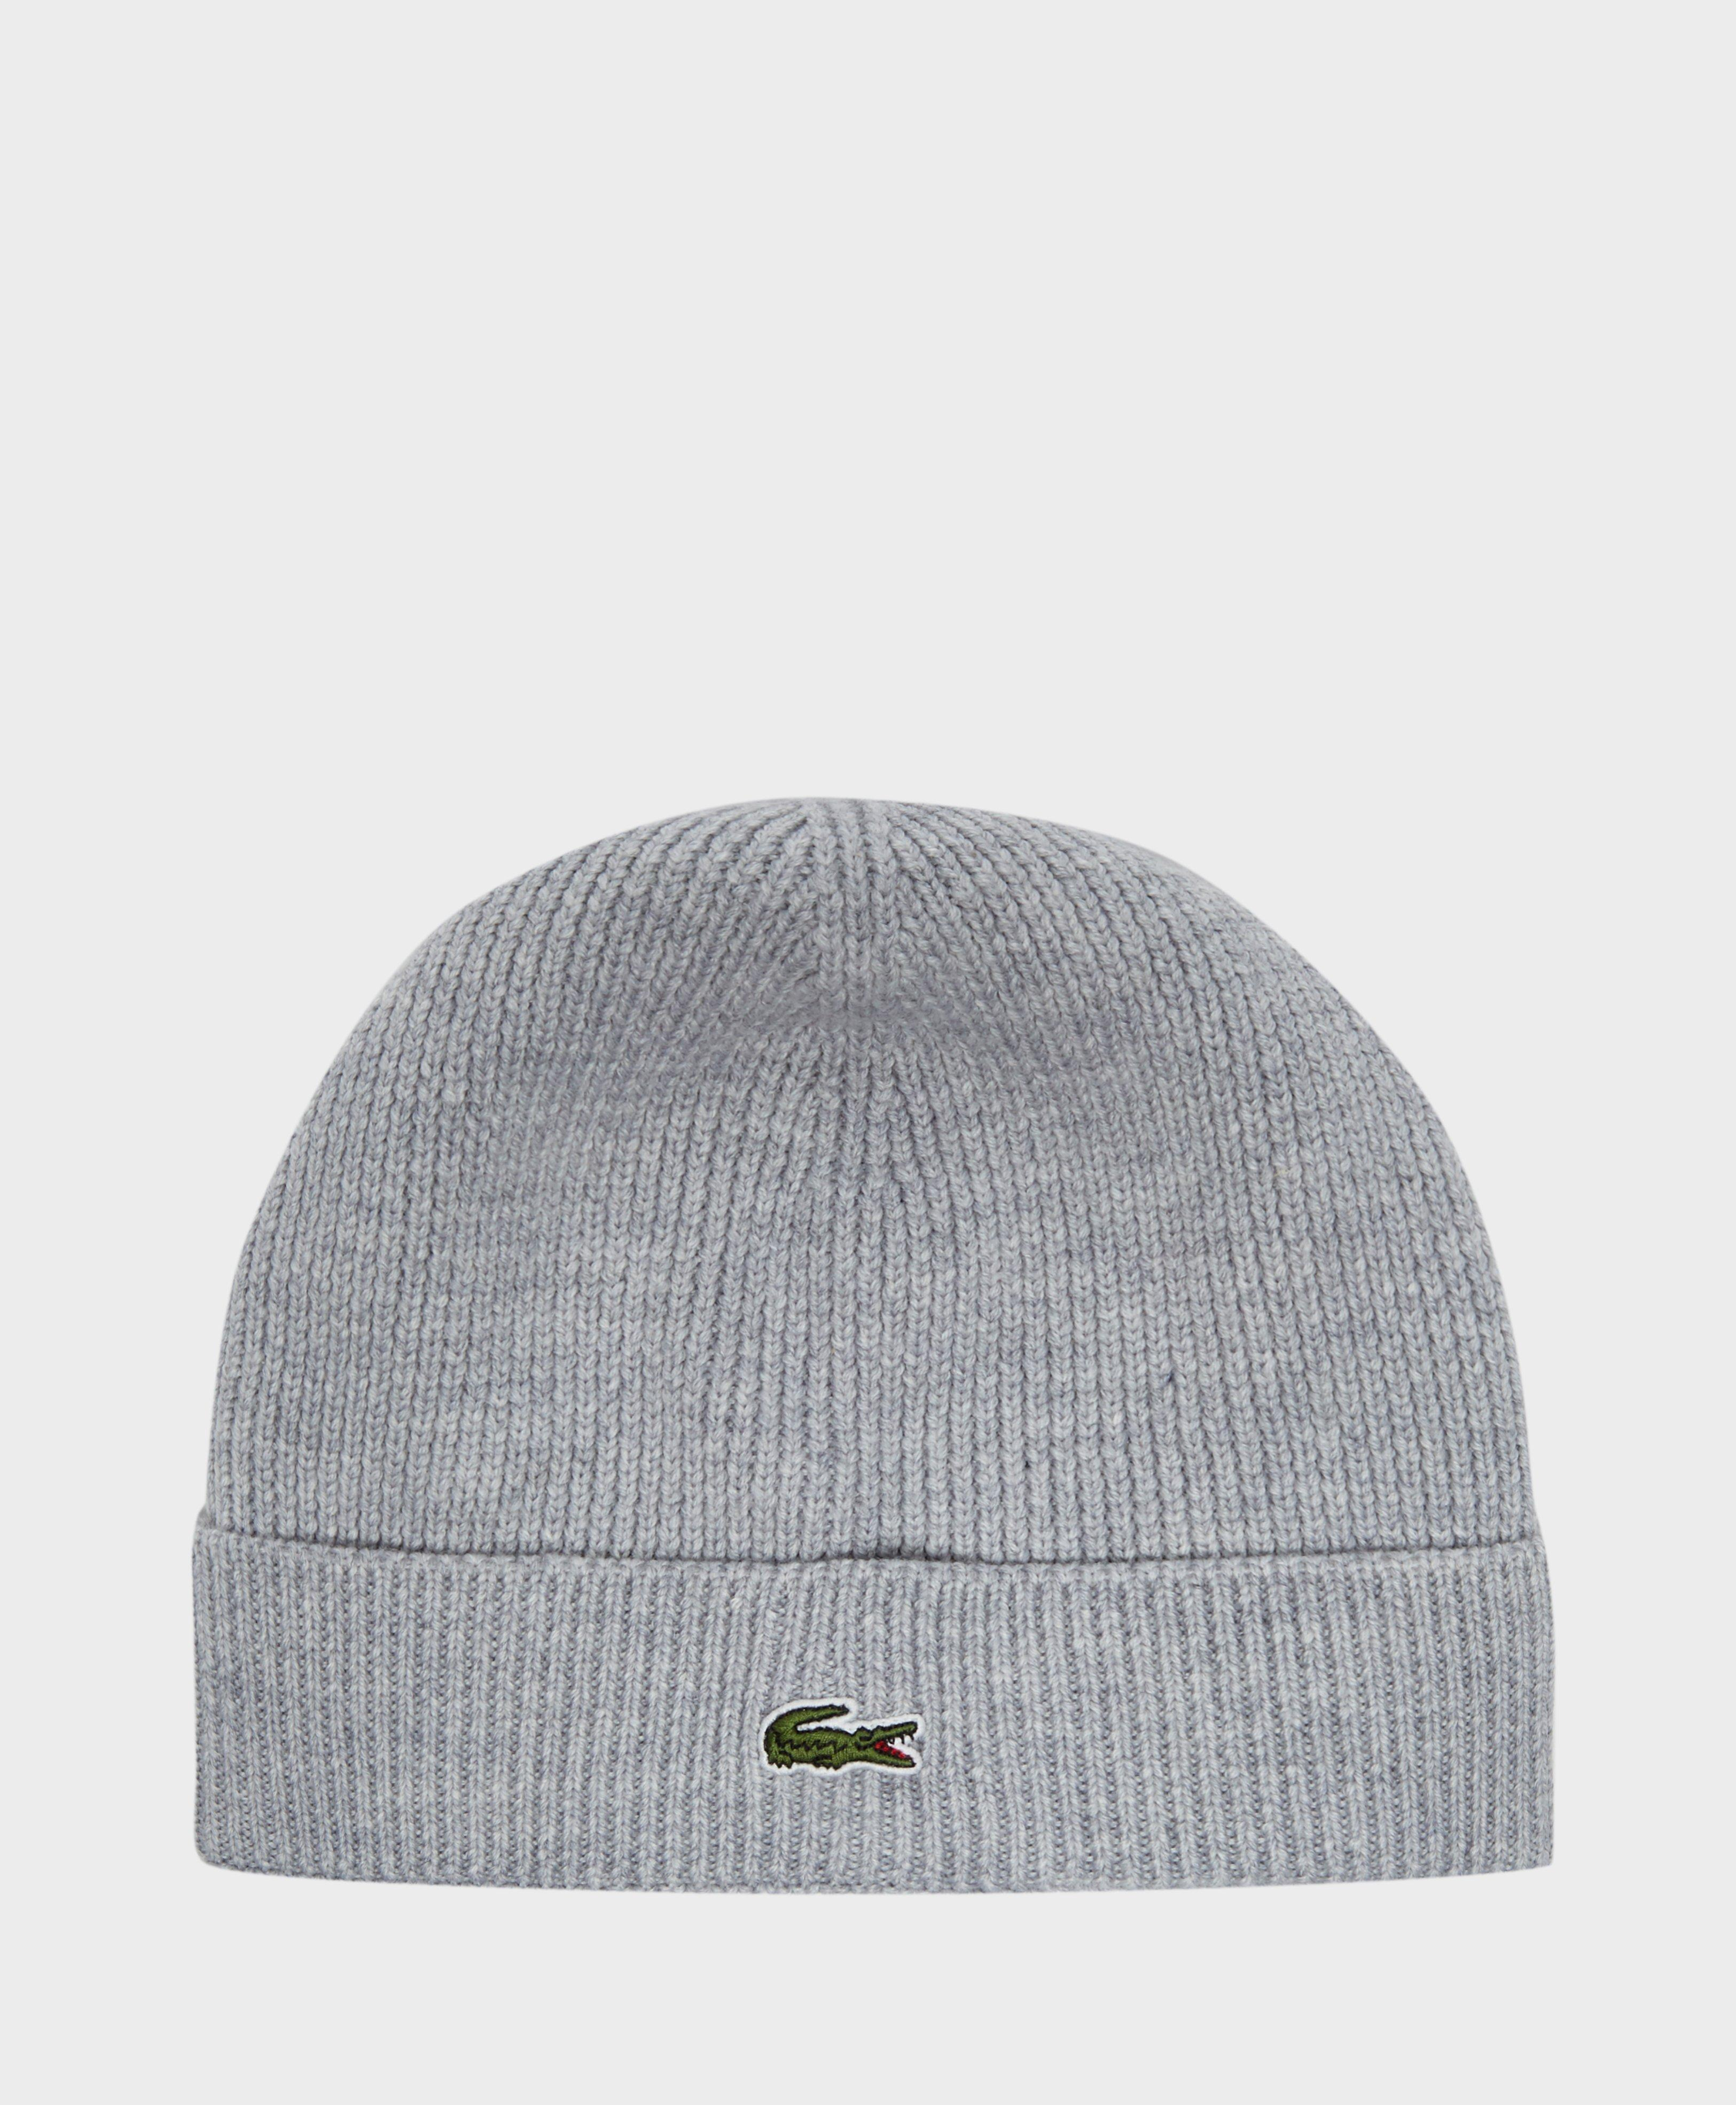 90ea7686f792 Lacoste Knitted Beanie in Gray for Men - Lyst